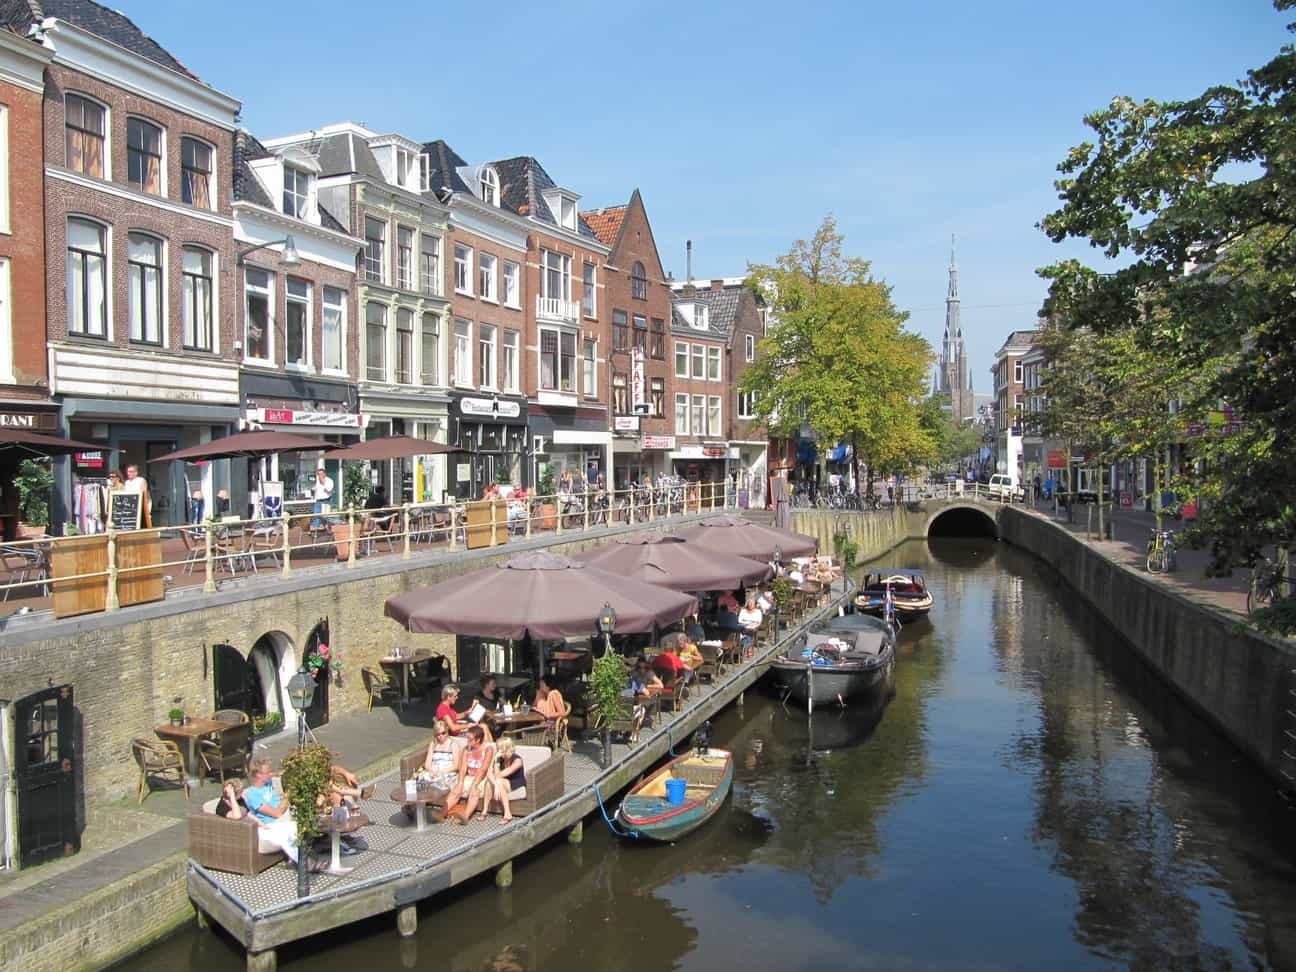 6 Things to Do When You Move to Leeuwarden | HousingAnywhere